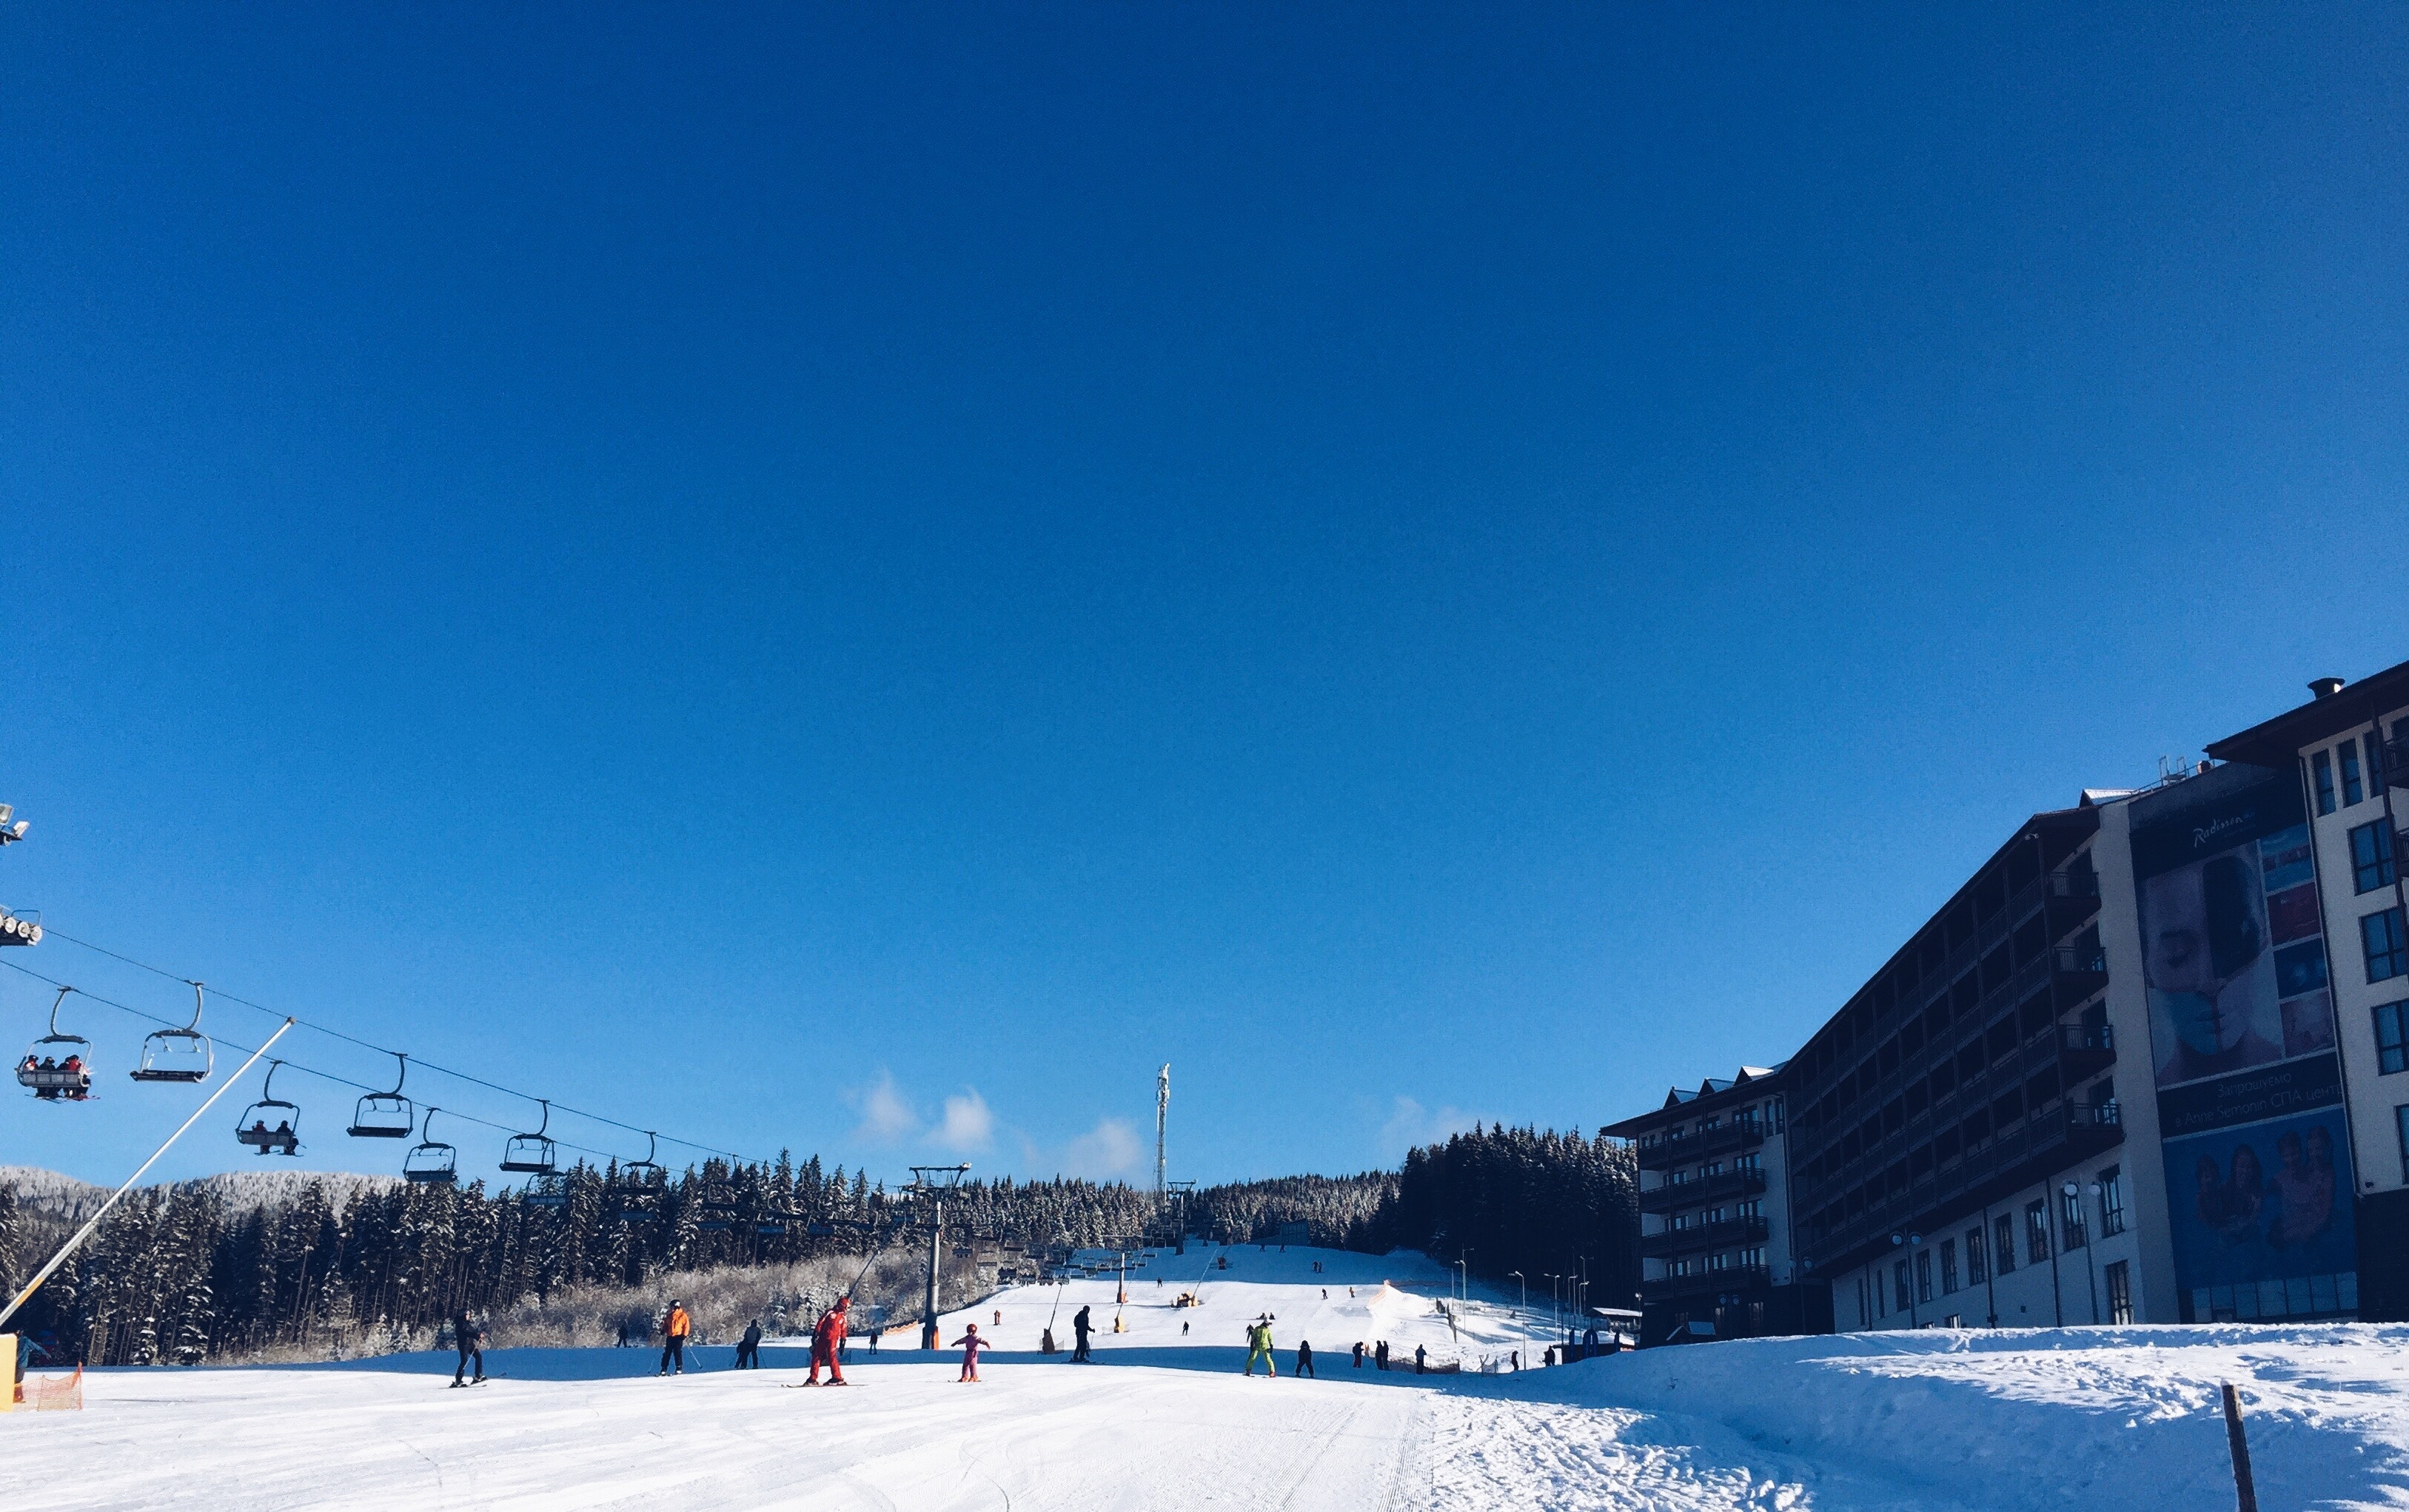 People on a snowy ski hill with a lift on the left and a hotel on the right photo